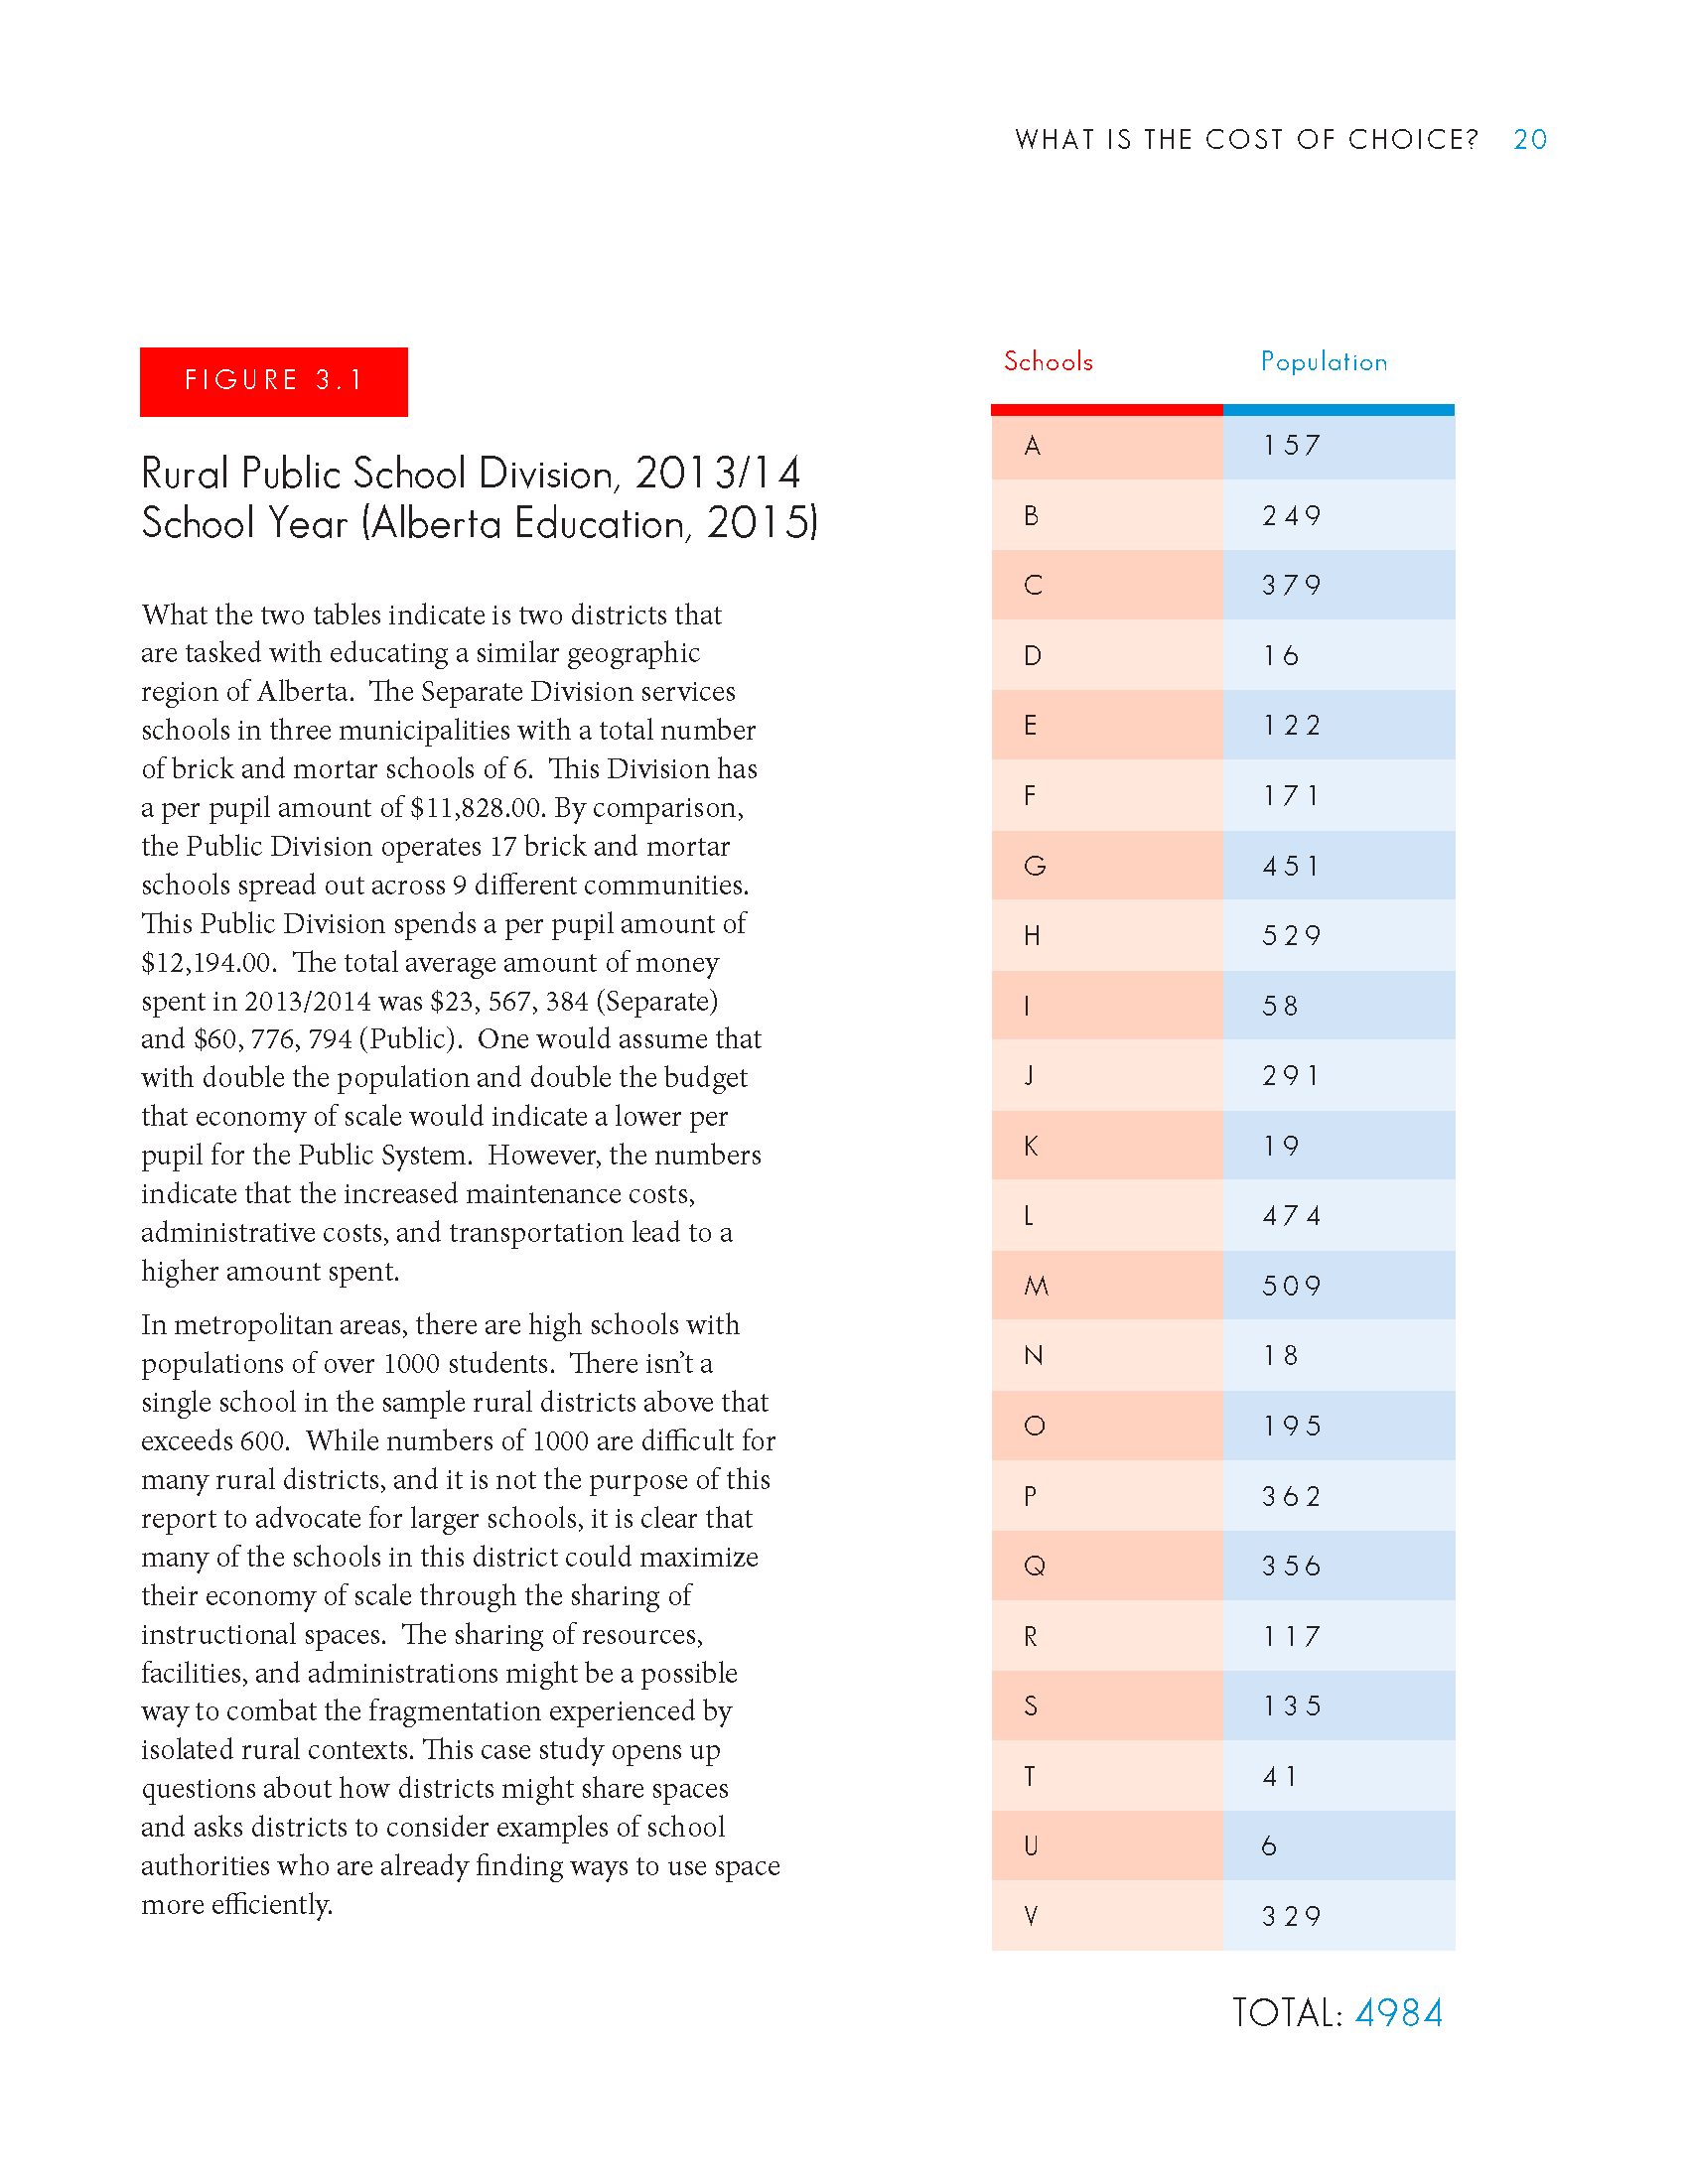 PSBAA-Cost-of-Choice-2017_Page_21.png